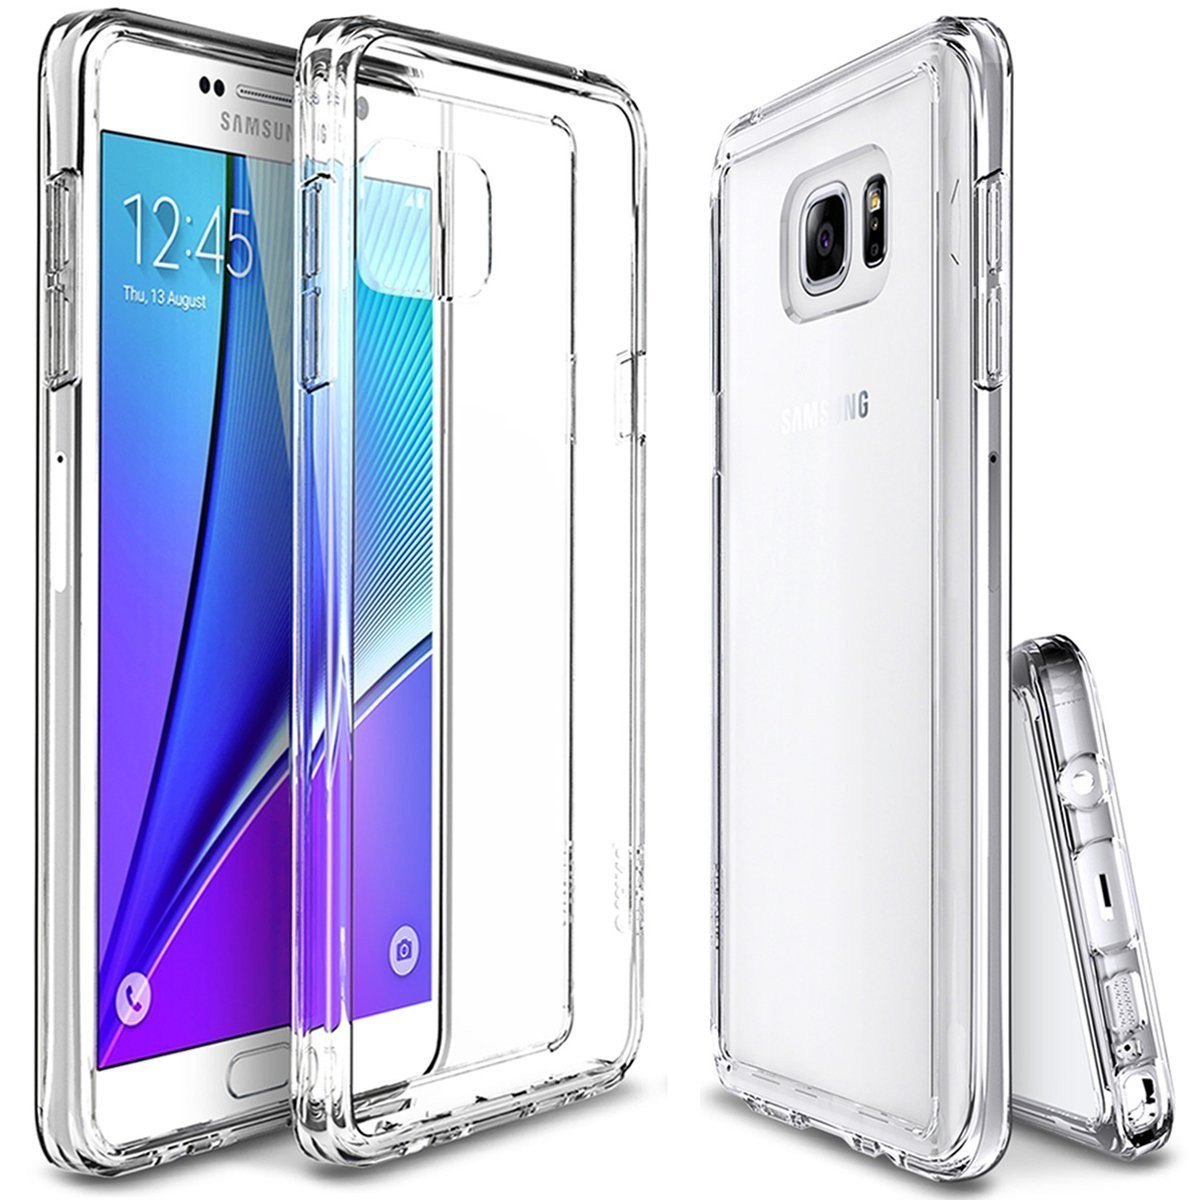 122fbd6fbe1 Funda Samsung Galaxy G530 Note Edge Young 2 - $ 16,50 en Mercado Libre